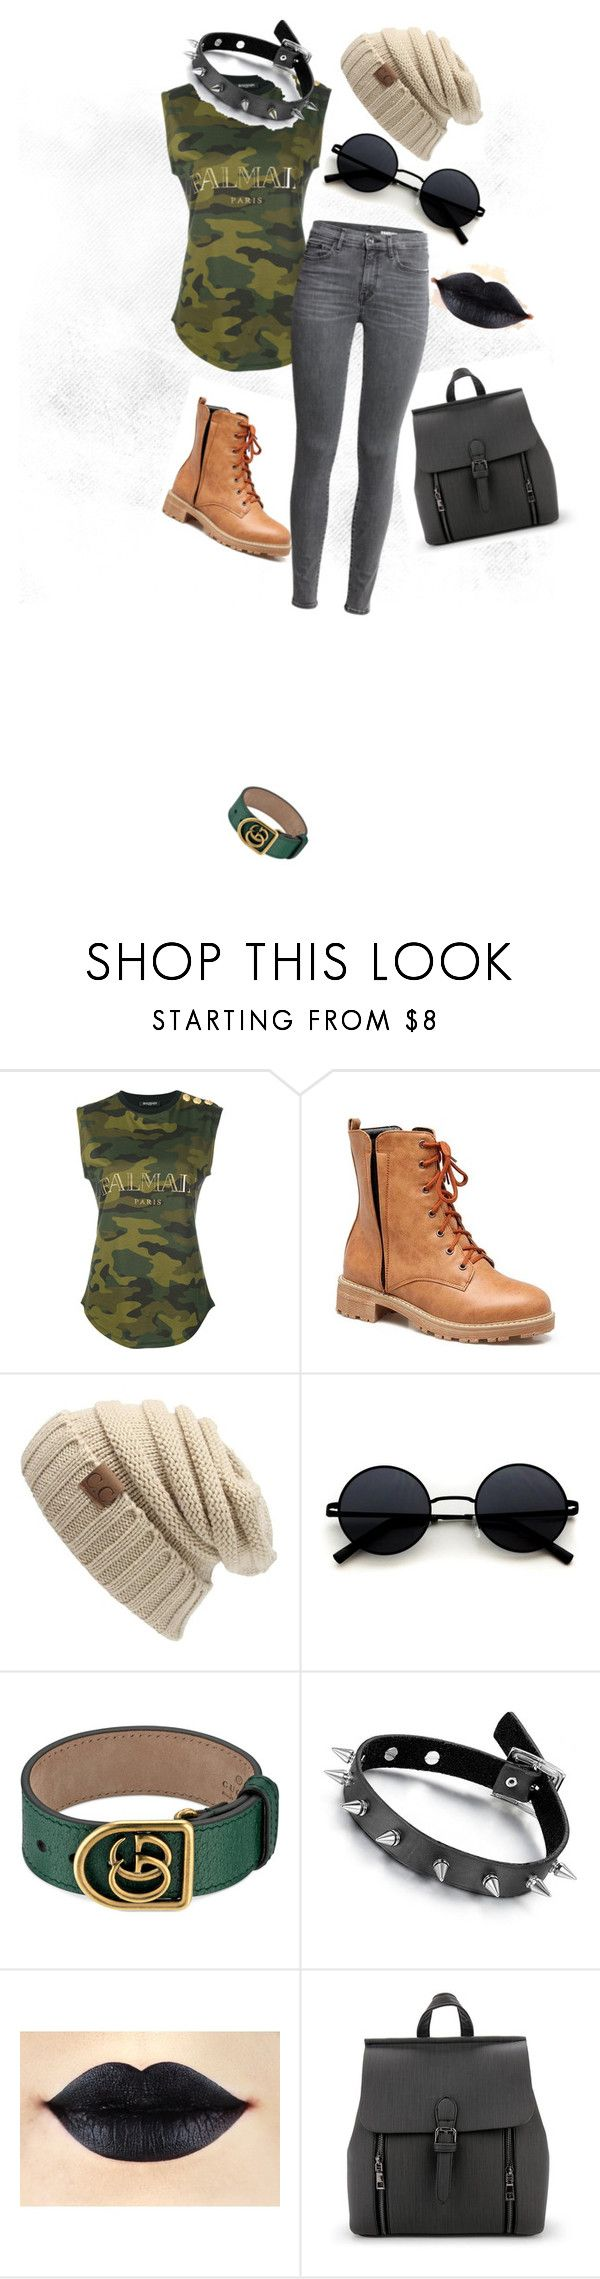 """Punk Hipster Chic"" by emilymariemann ❤ liked on Polyvore featuring Balmain and Gucci"